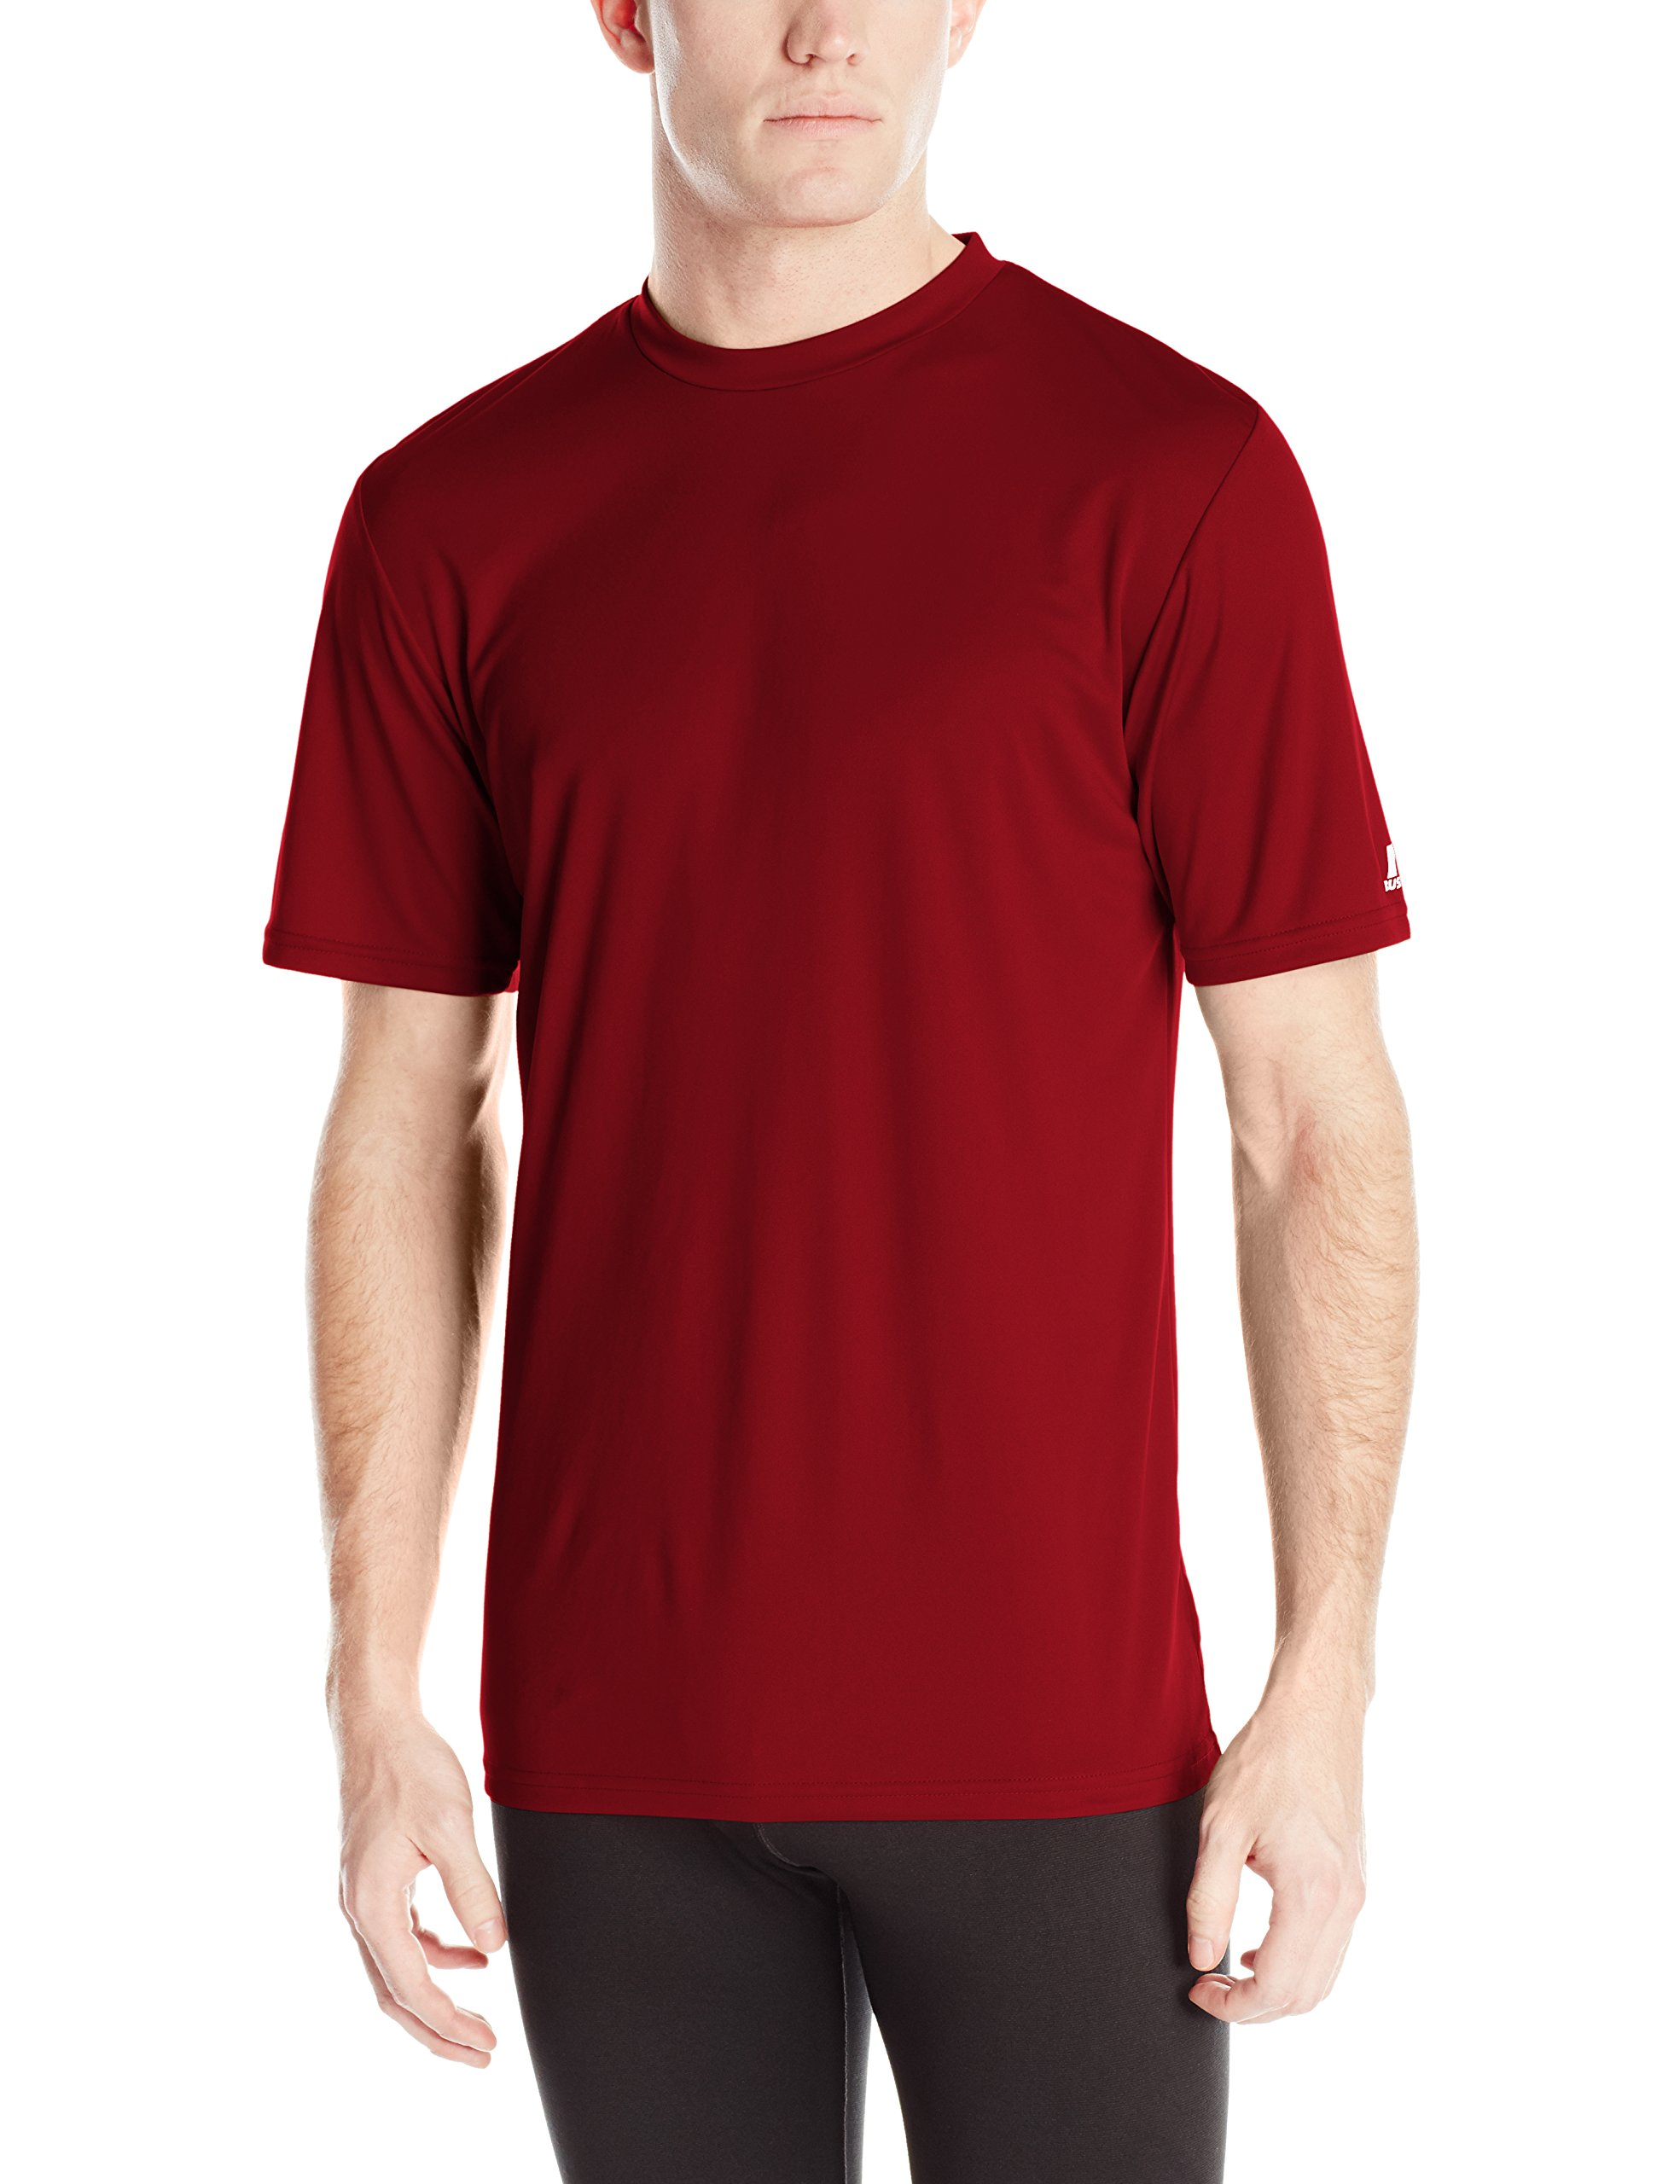 Russell Athletic Men's Performance T-Shirt, Cardinal, 3X-Large by Russell Athletic